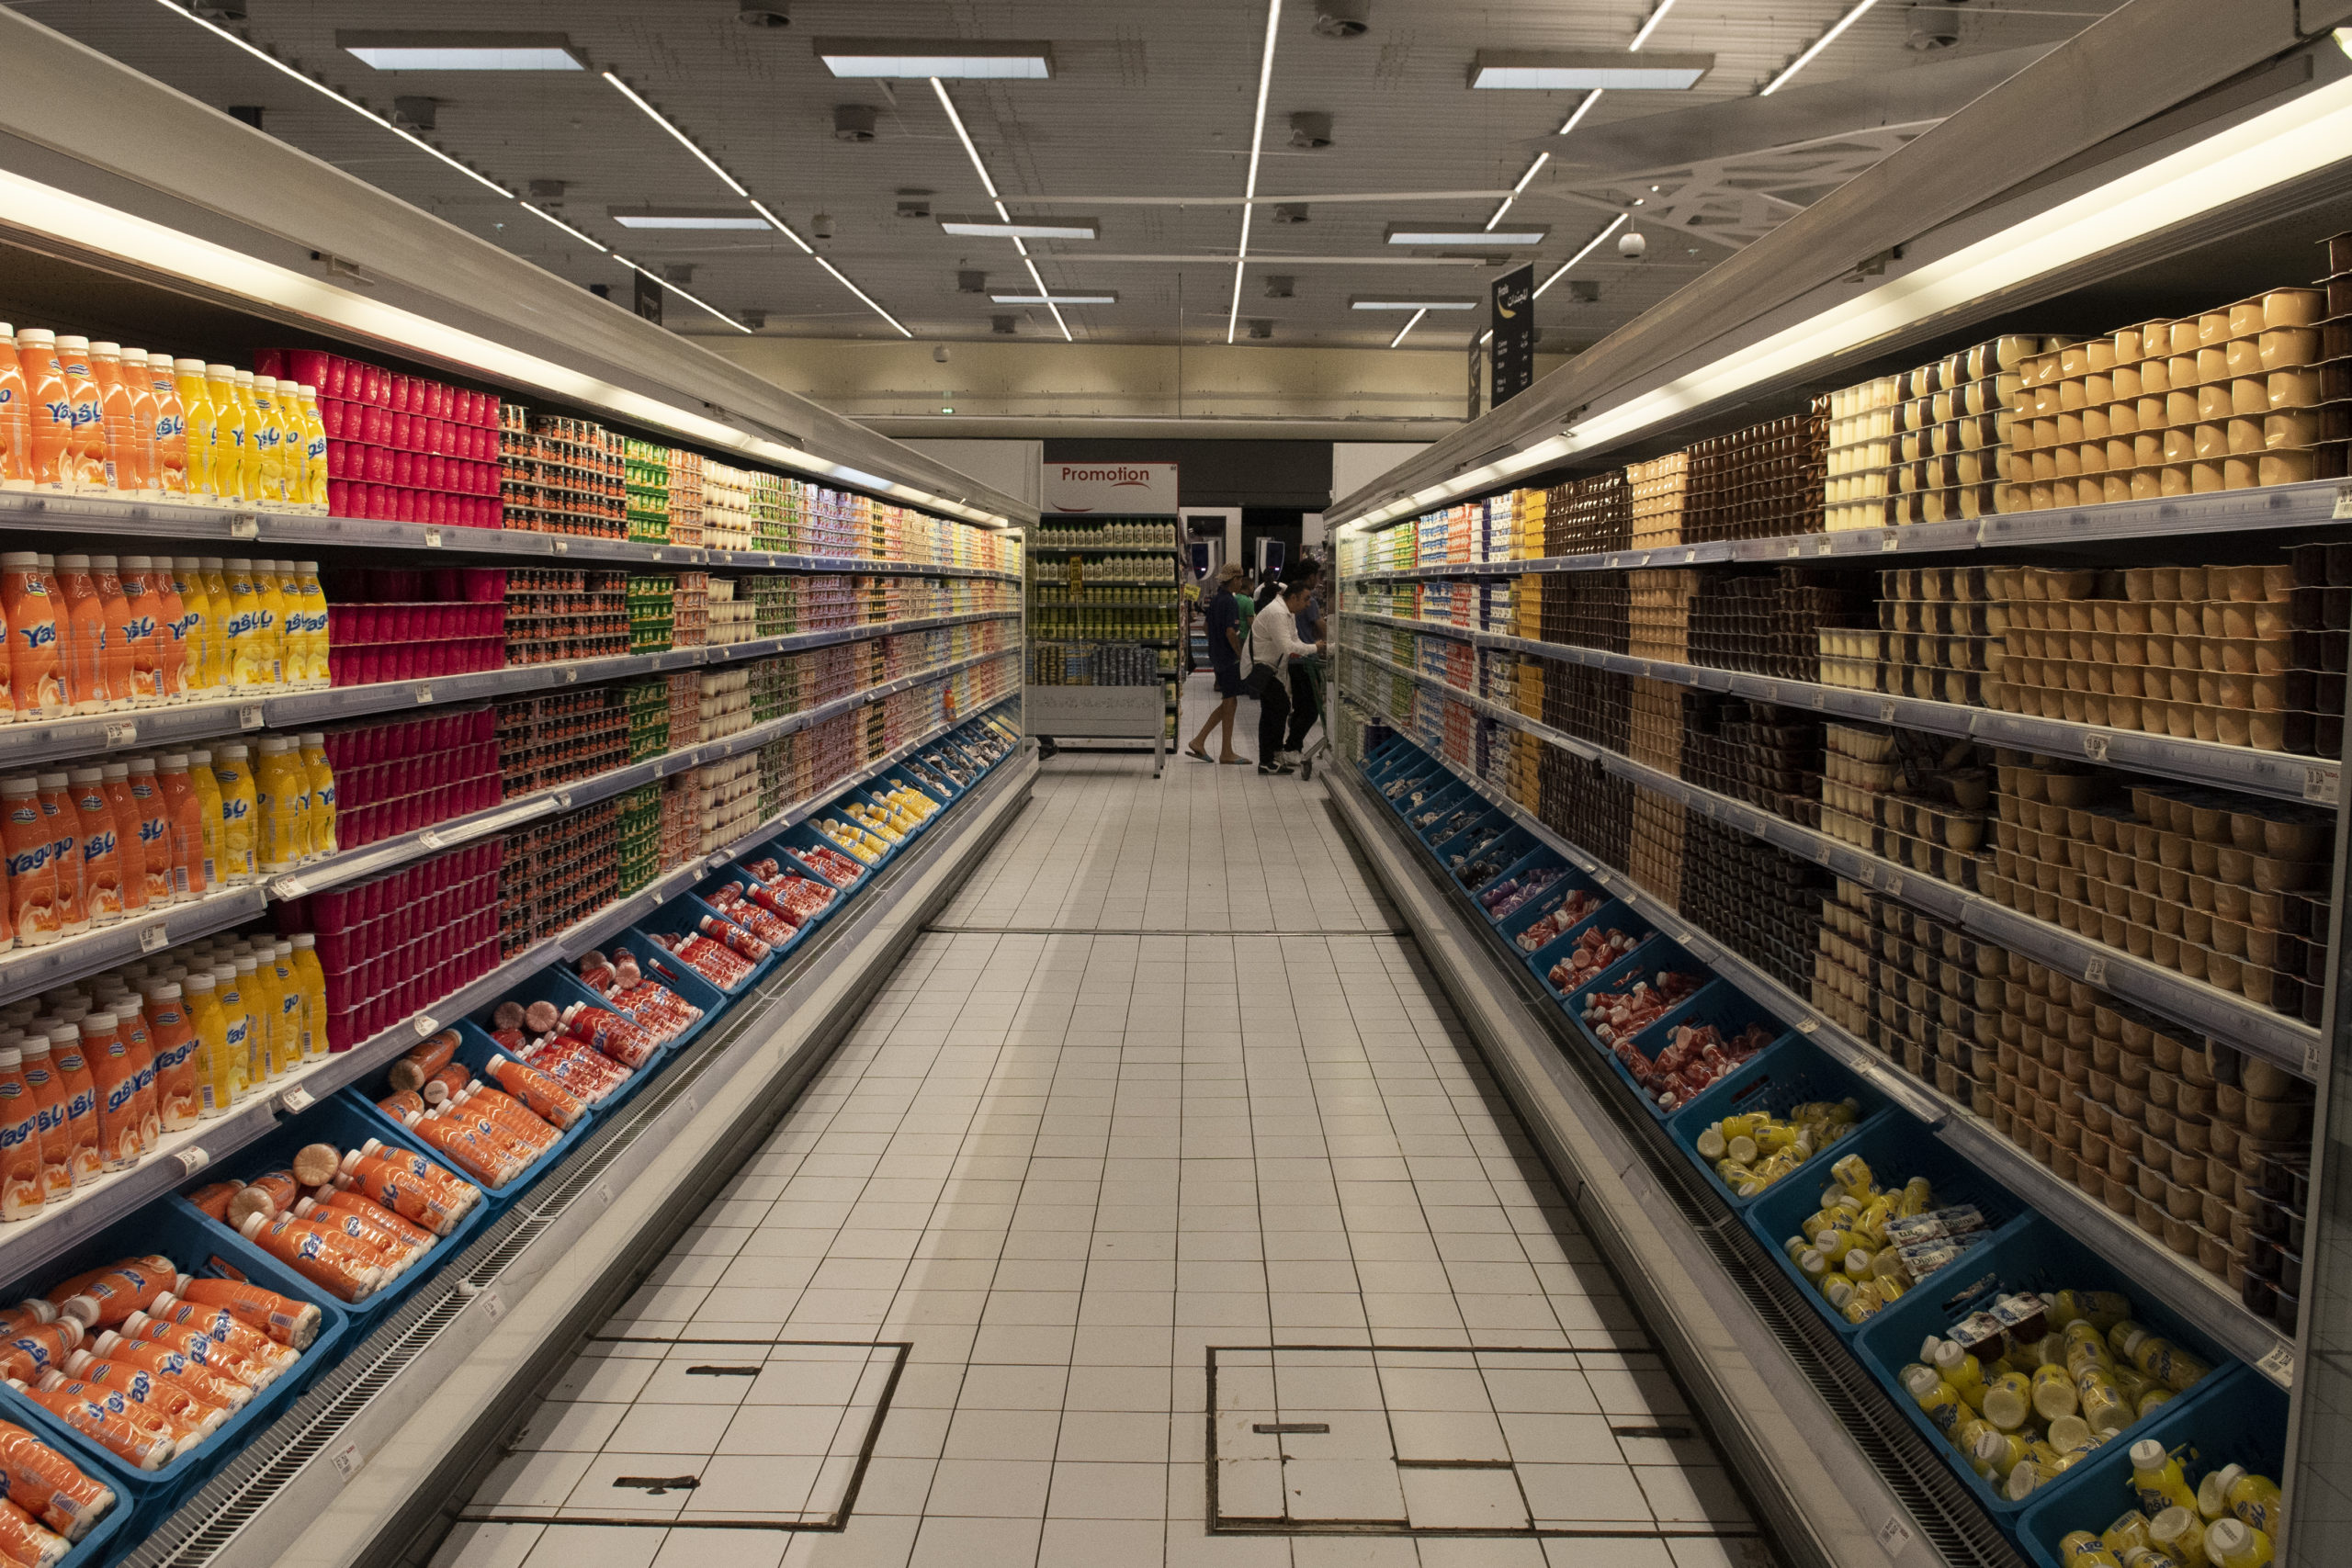 Dairy aisle at a supermarket